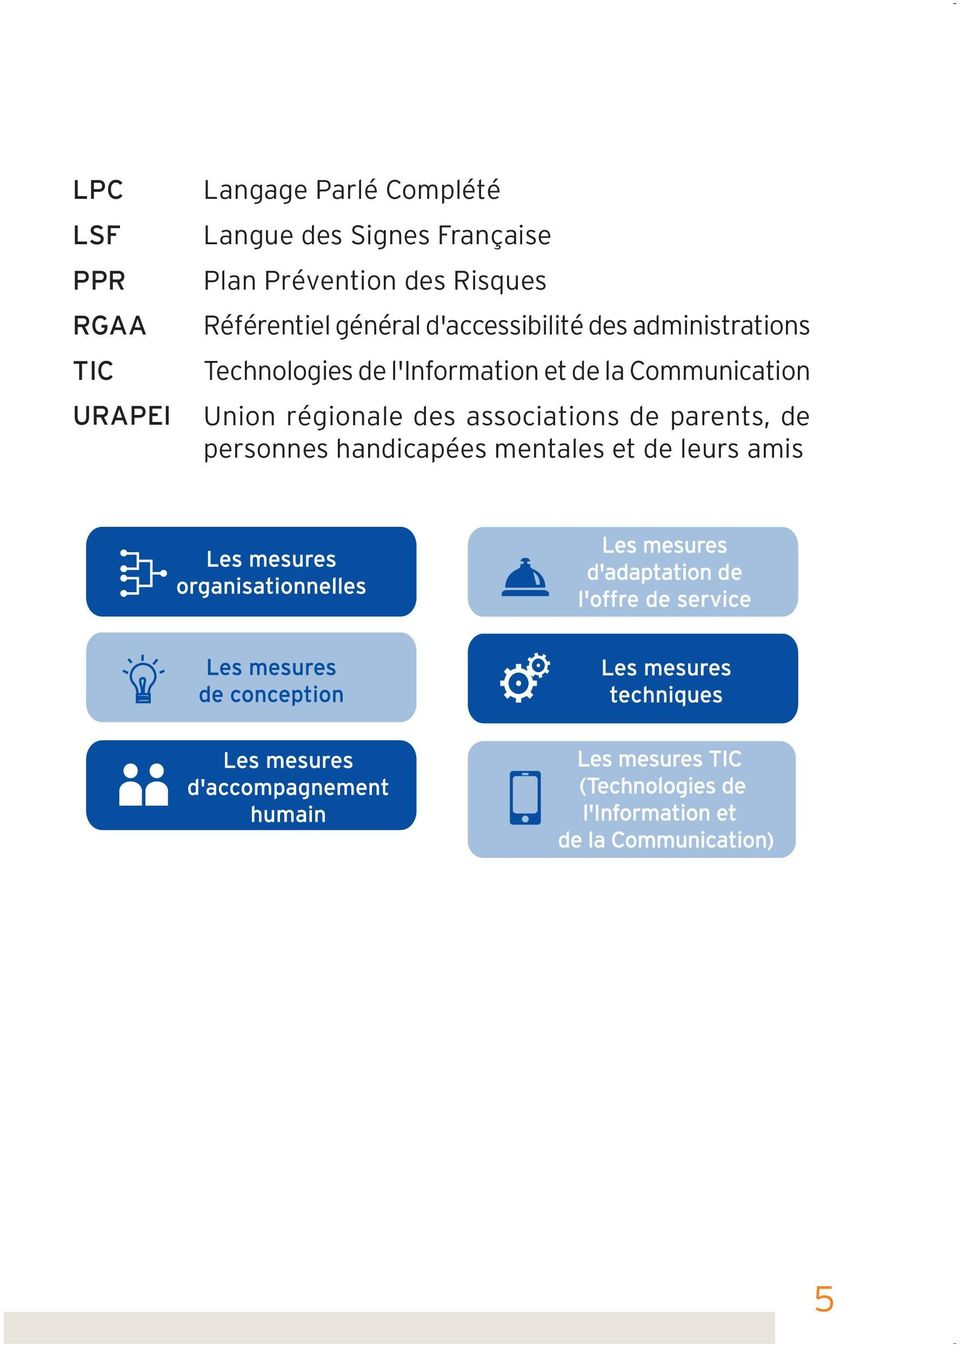 administrations Technologies de l'information et de la Communication Union